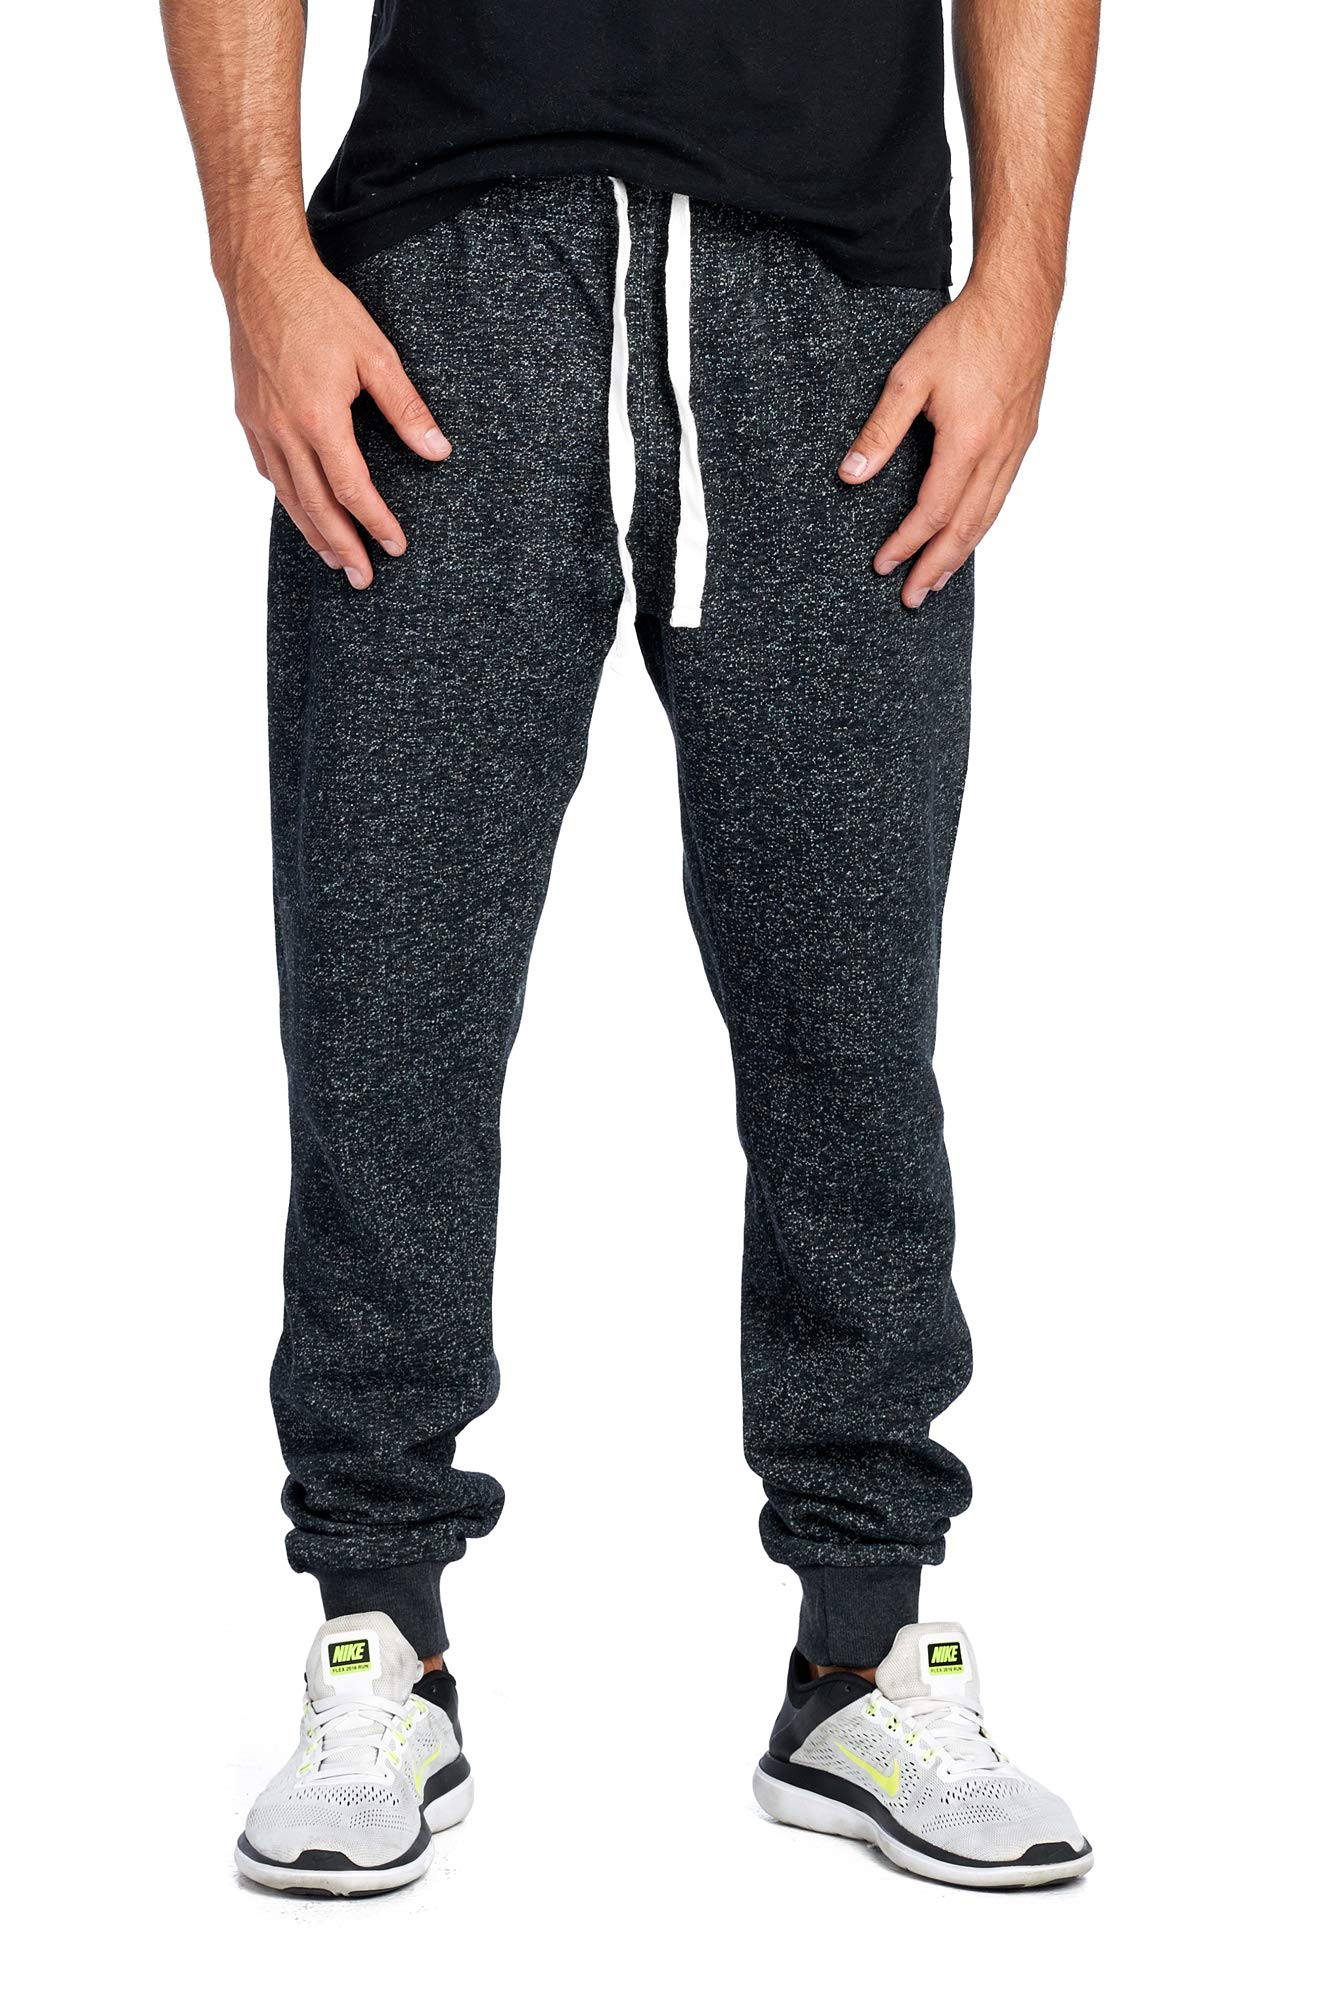 ProGo Men's Joggers Sweatpants Basic Fleece Marled Jogger Pant Elastic Waist (2X-Large, Marled Black) by PROGO USA